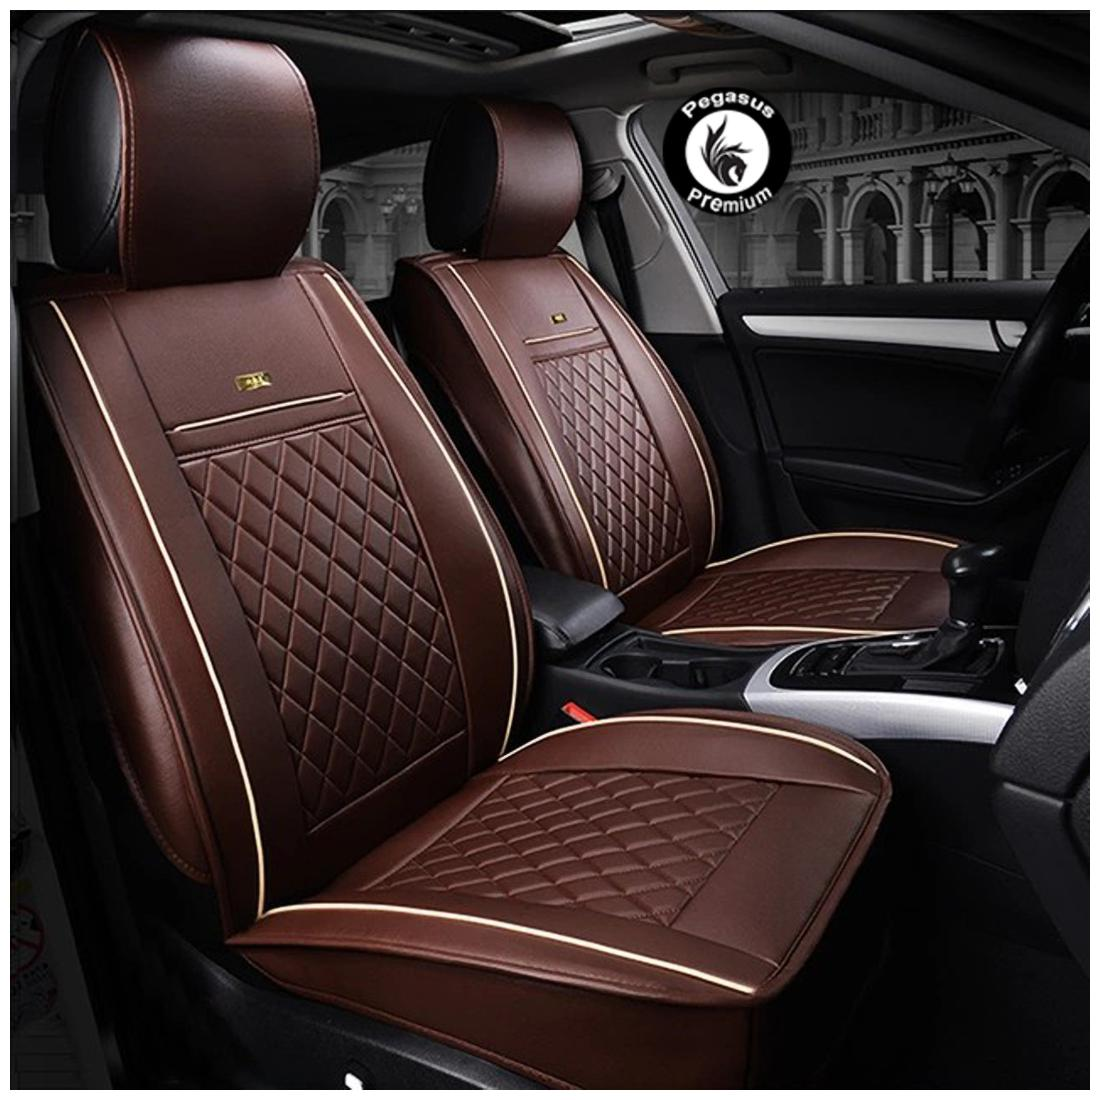 Car Seat Covers Buy Custom Leather Seat Cover For Car Online At Best Price Paytmmall Com